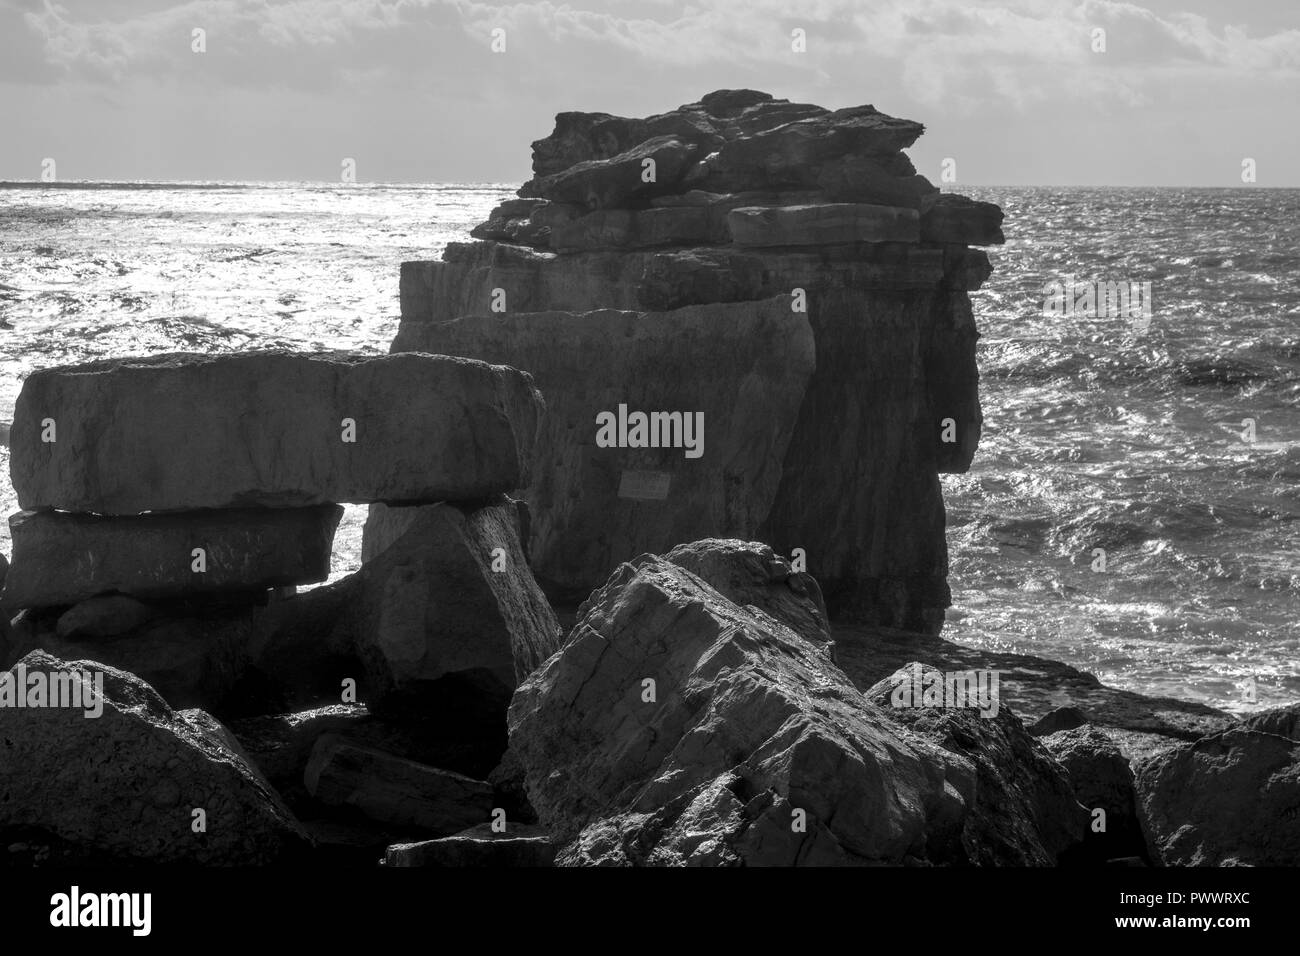 Pultpit  rock and  trinity monument Dorset  Portland bill - Stock Image